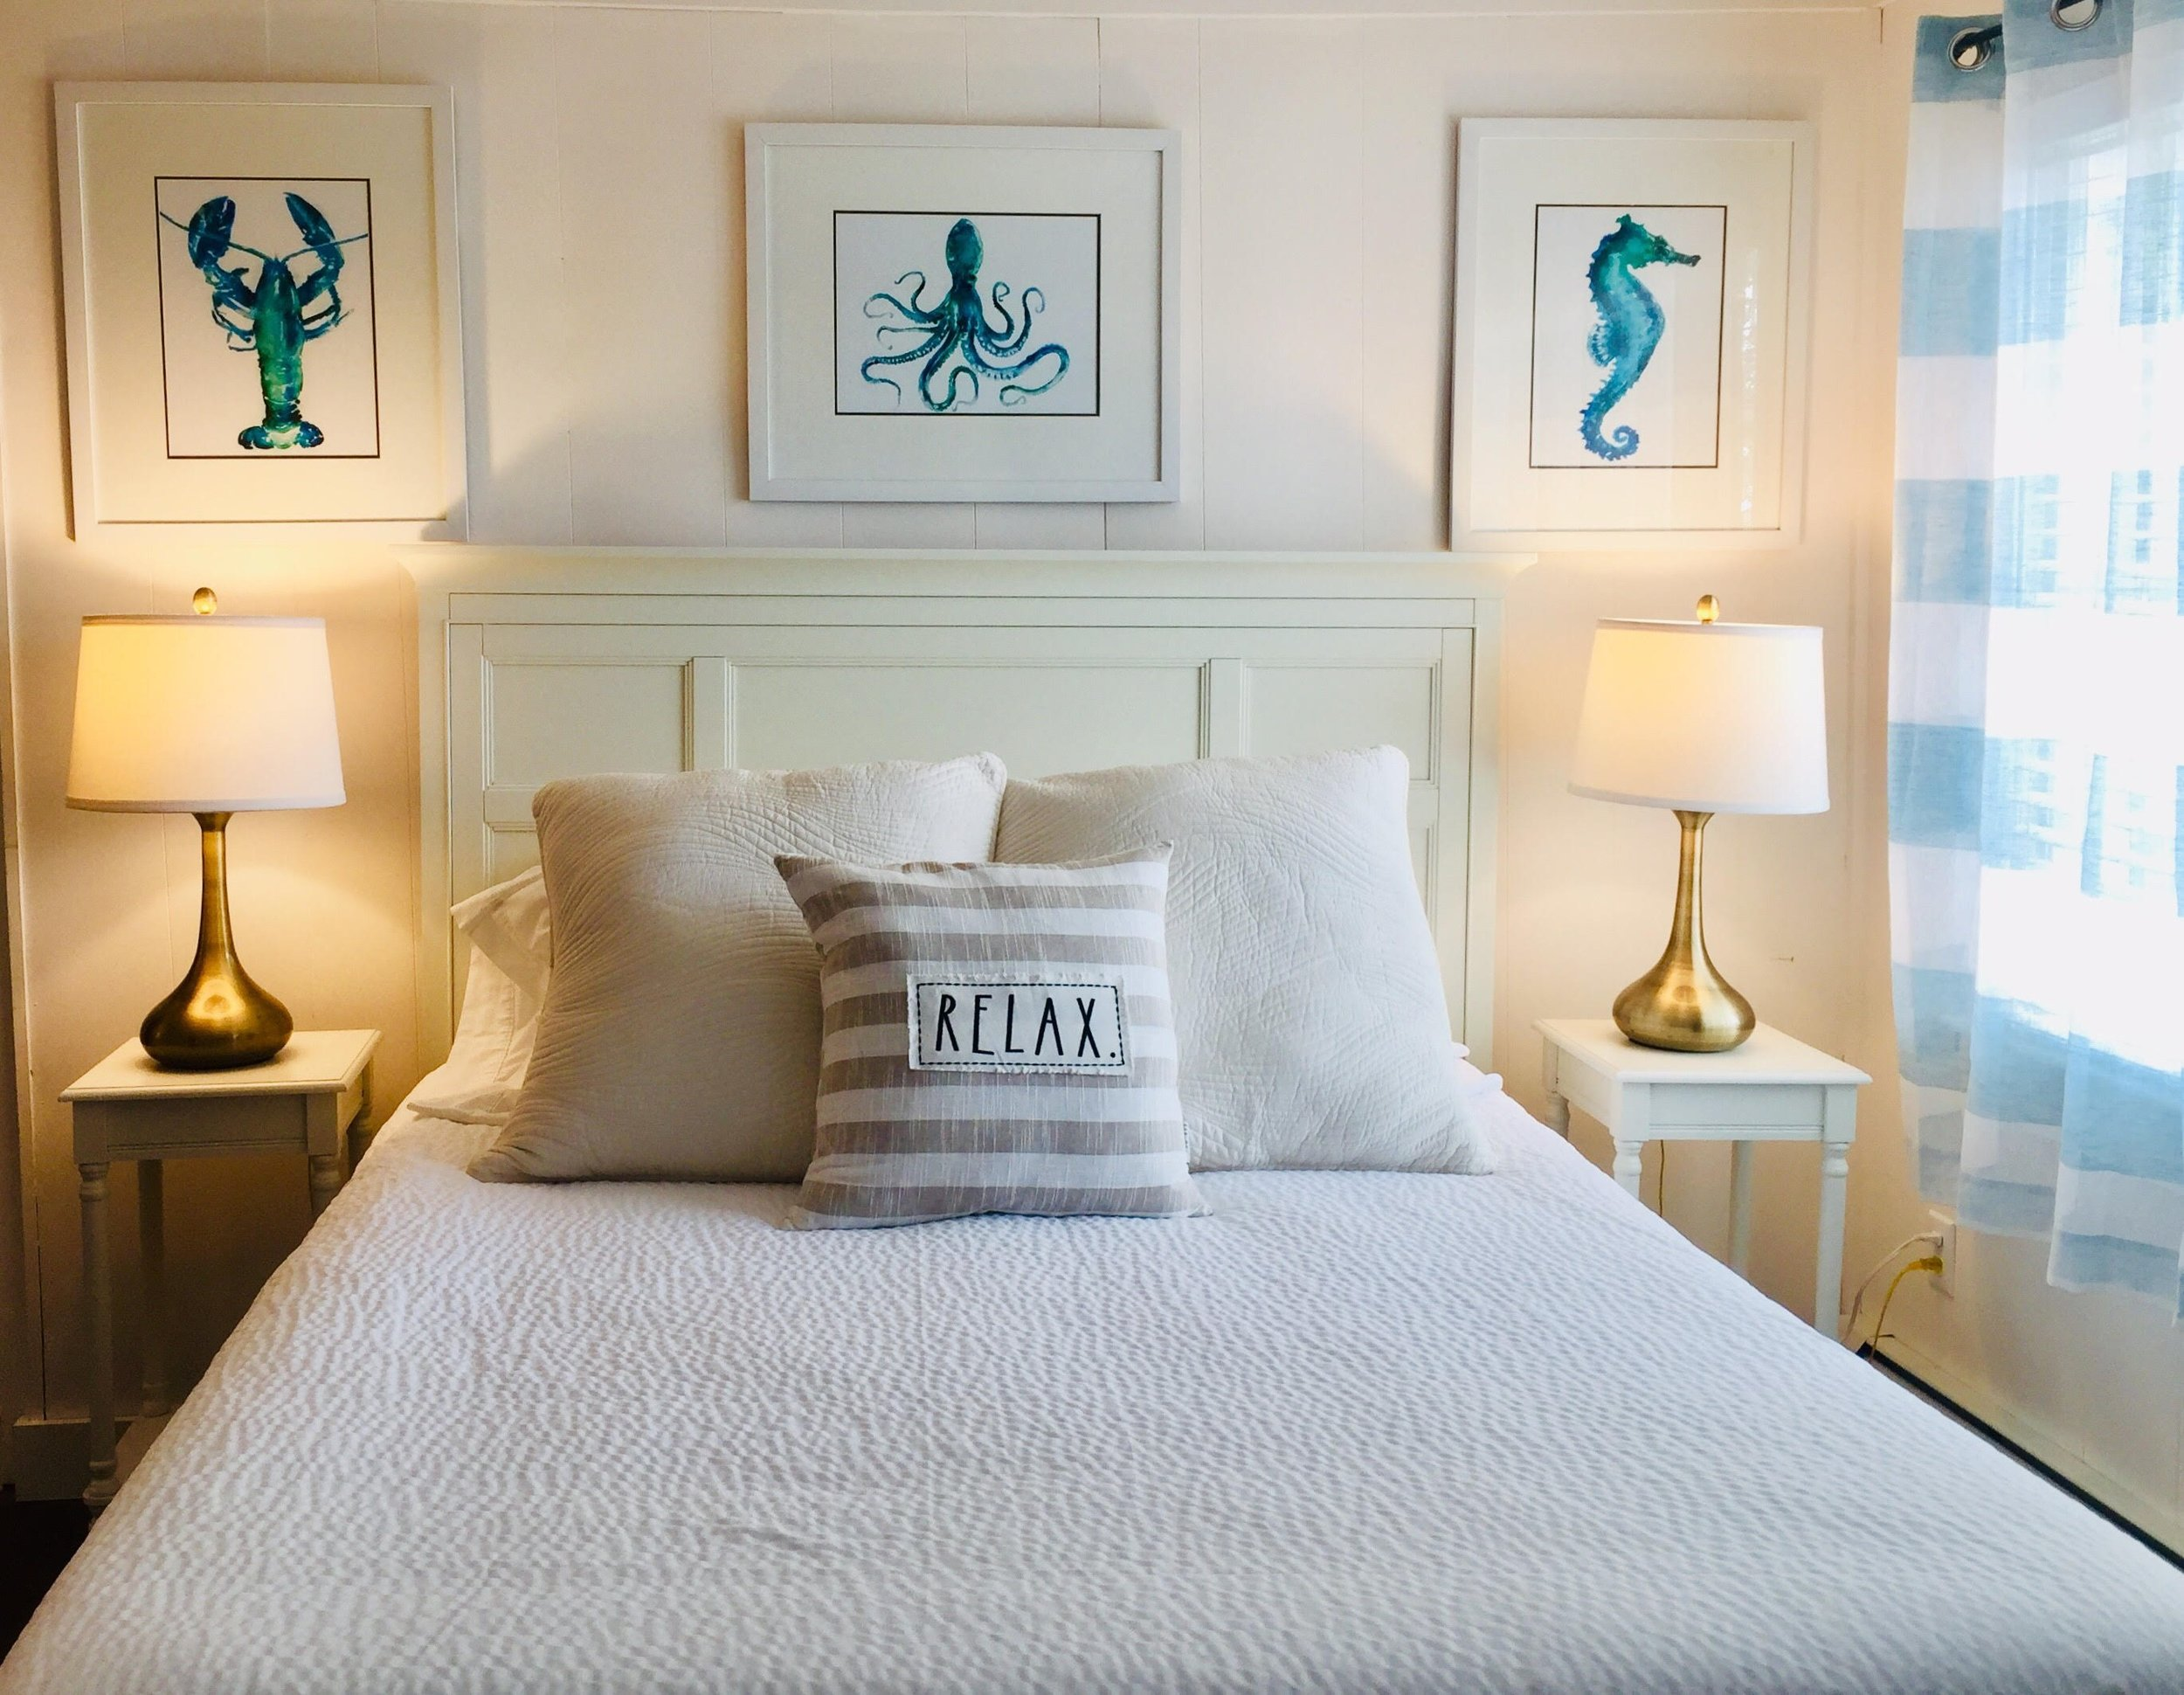 Quivett Room - The cozy Quivett Room has a queen bed, full size sofa-bed, microwave, fridge and a private bathroom. It overlooks the gardens and patios giving it the feel of your typical Cape Cod home surrounded by a beautiful landscape.